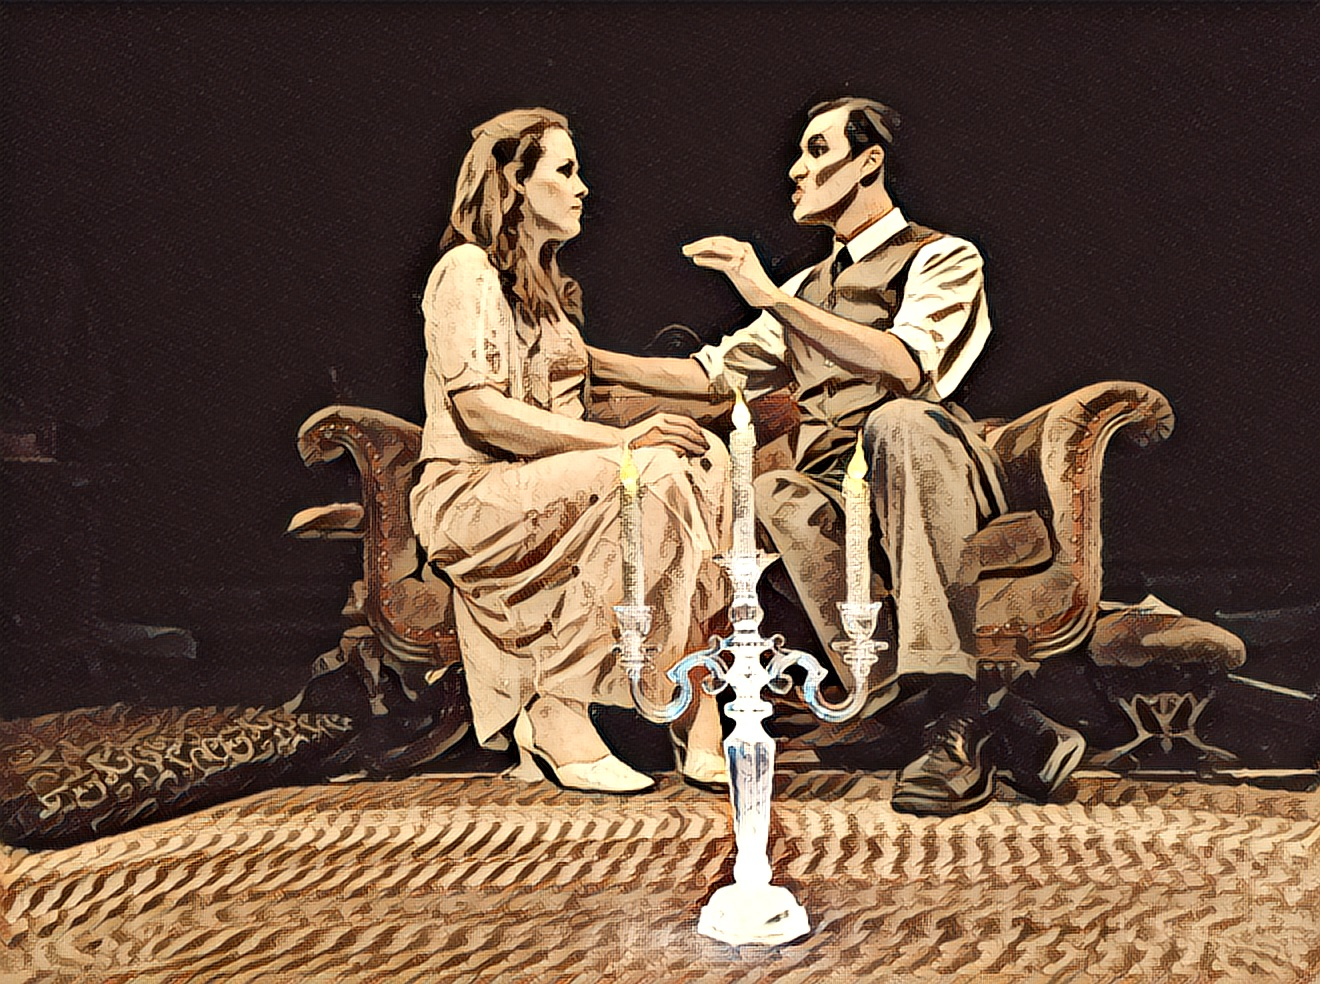 THE GLASS MENAGERIE - Spring 2017